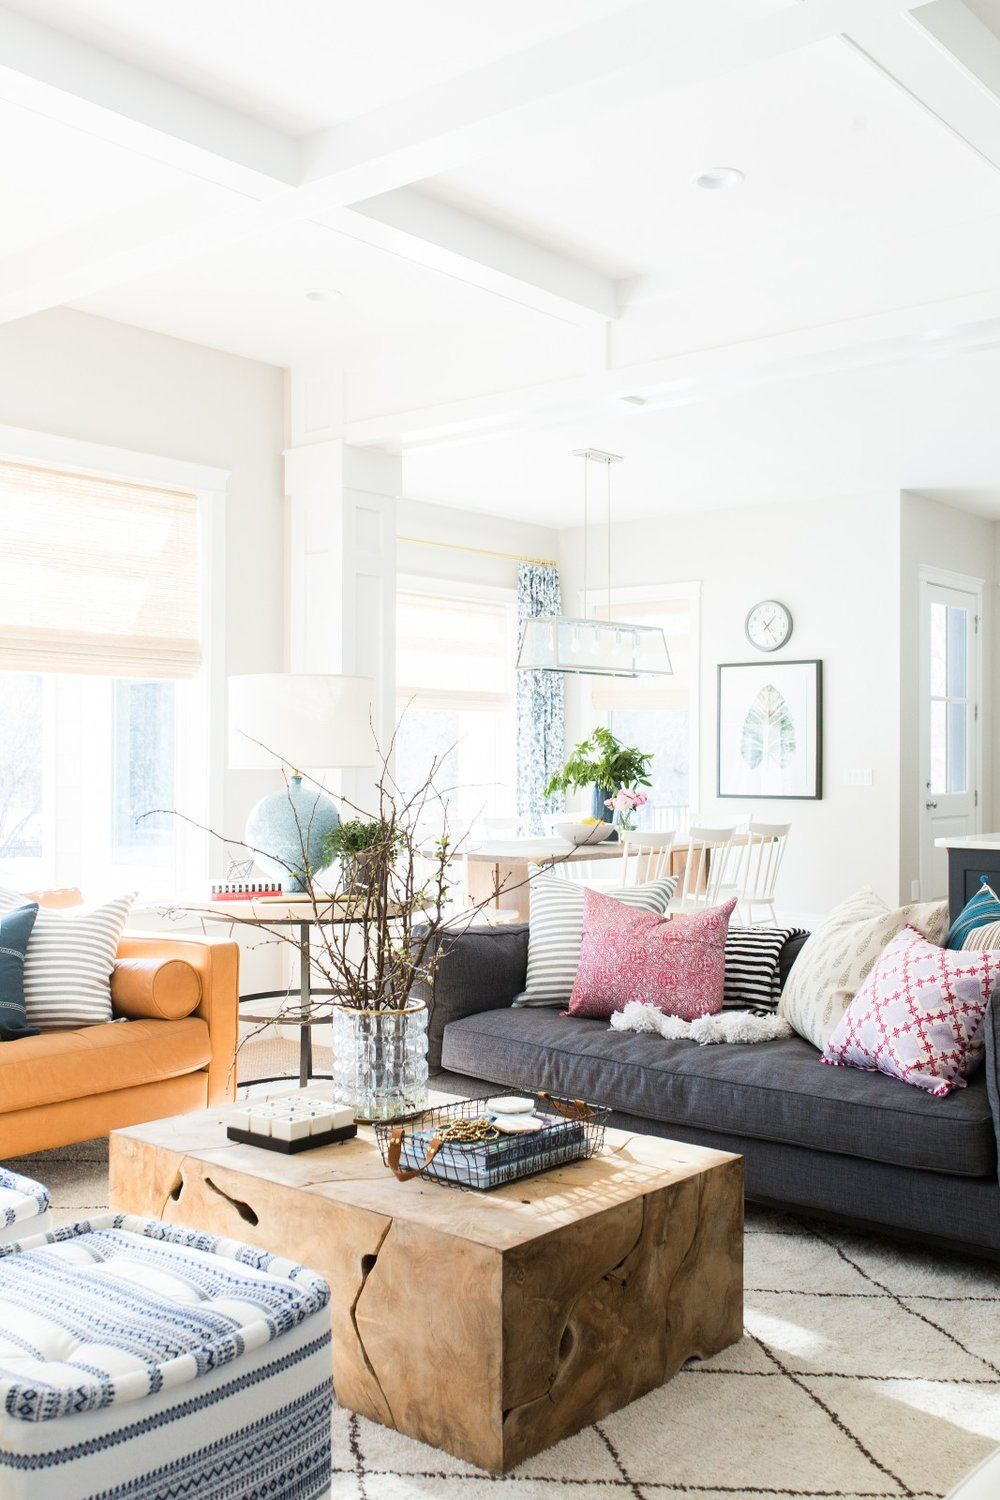 What An Interior Designer Would Wear 5 Fashion Rules Family